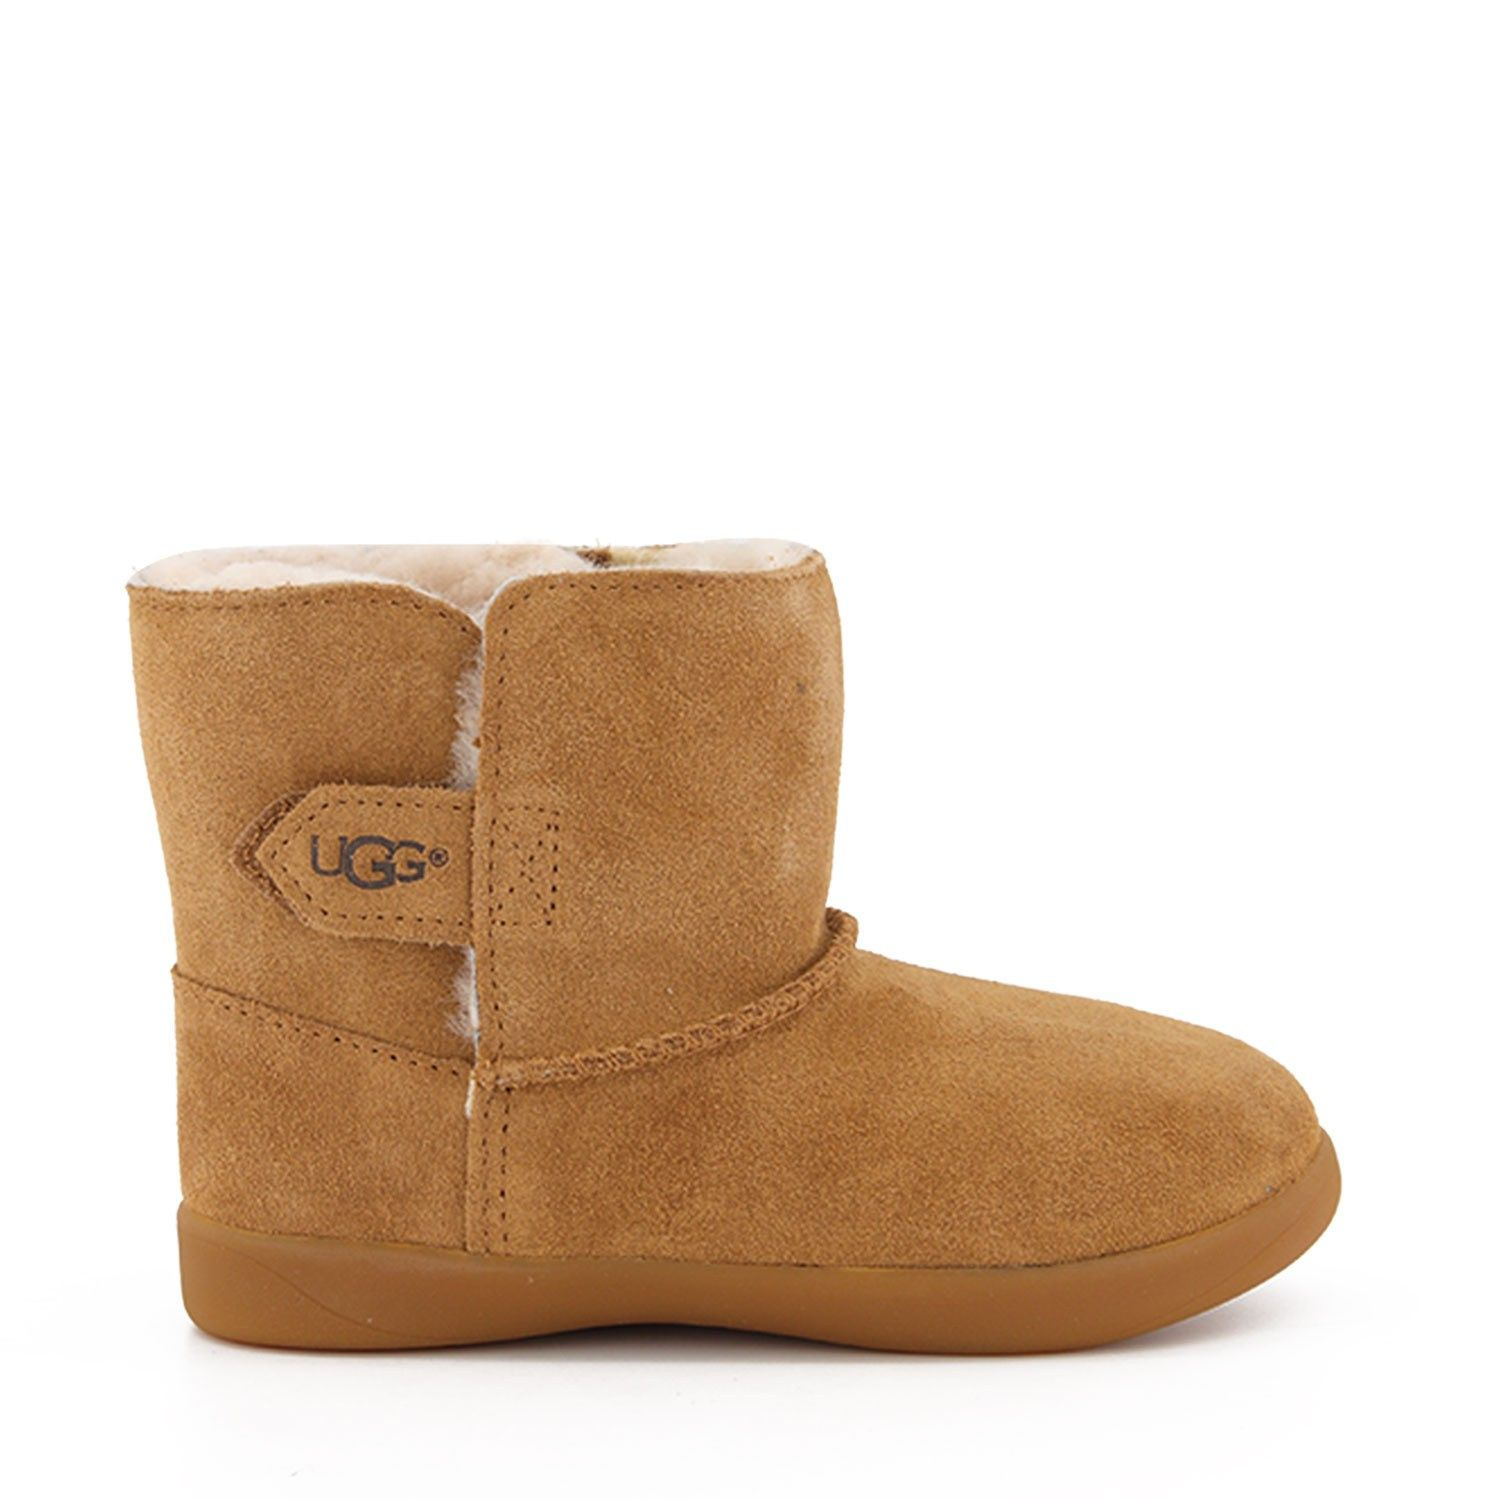 Picture of Ugg 1096089 kids boots camel